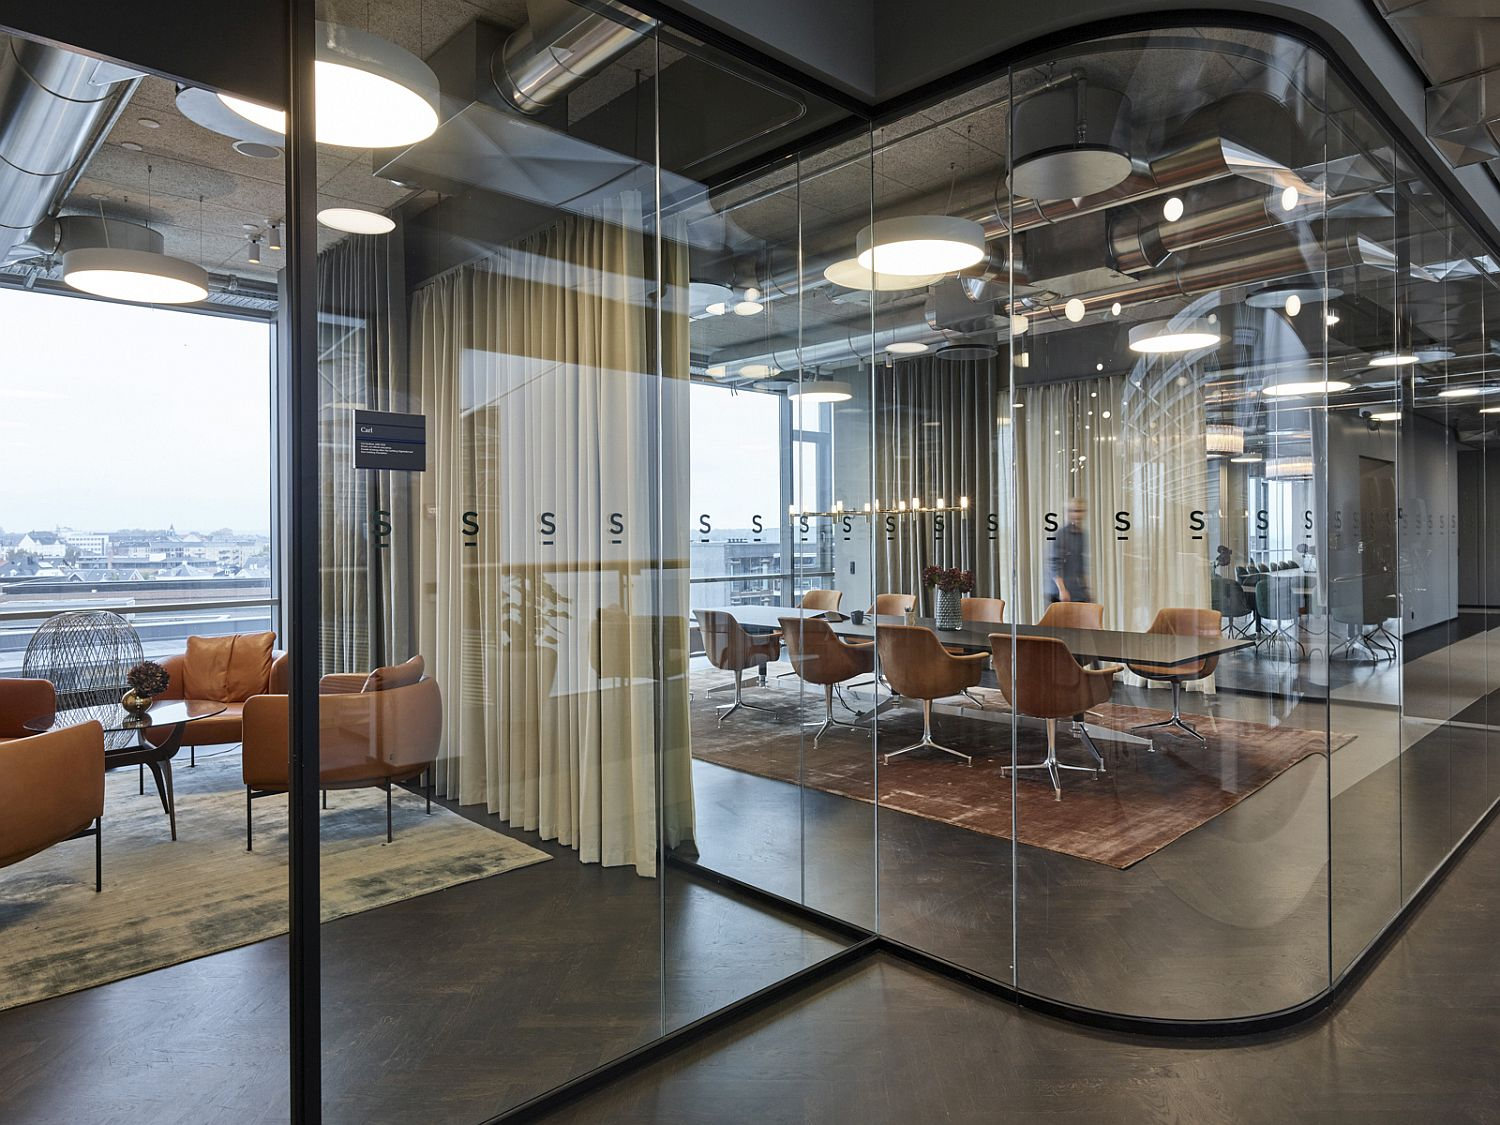 Glass cubes and cubicles throughout the office create a tranquil, yet social work environment